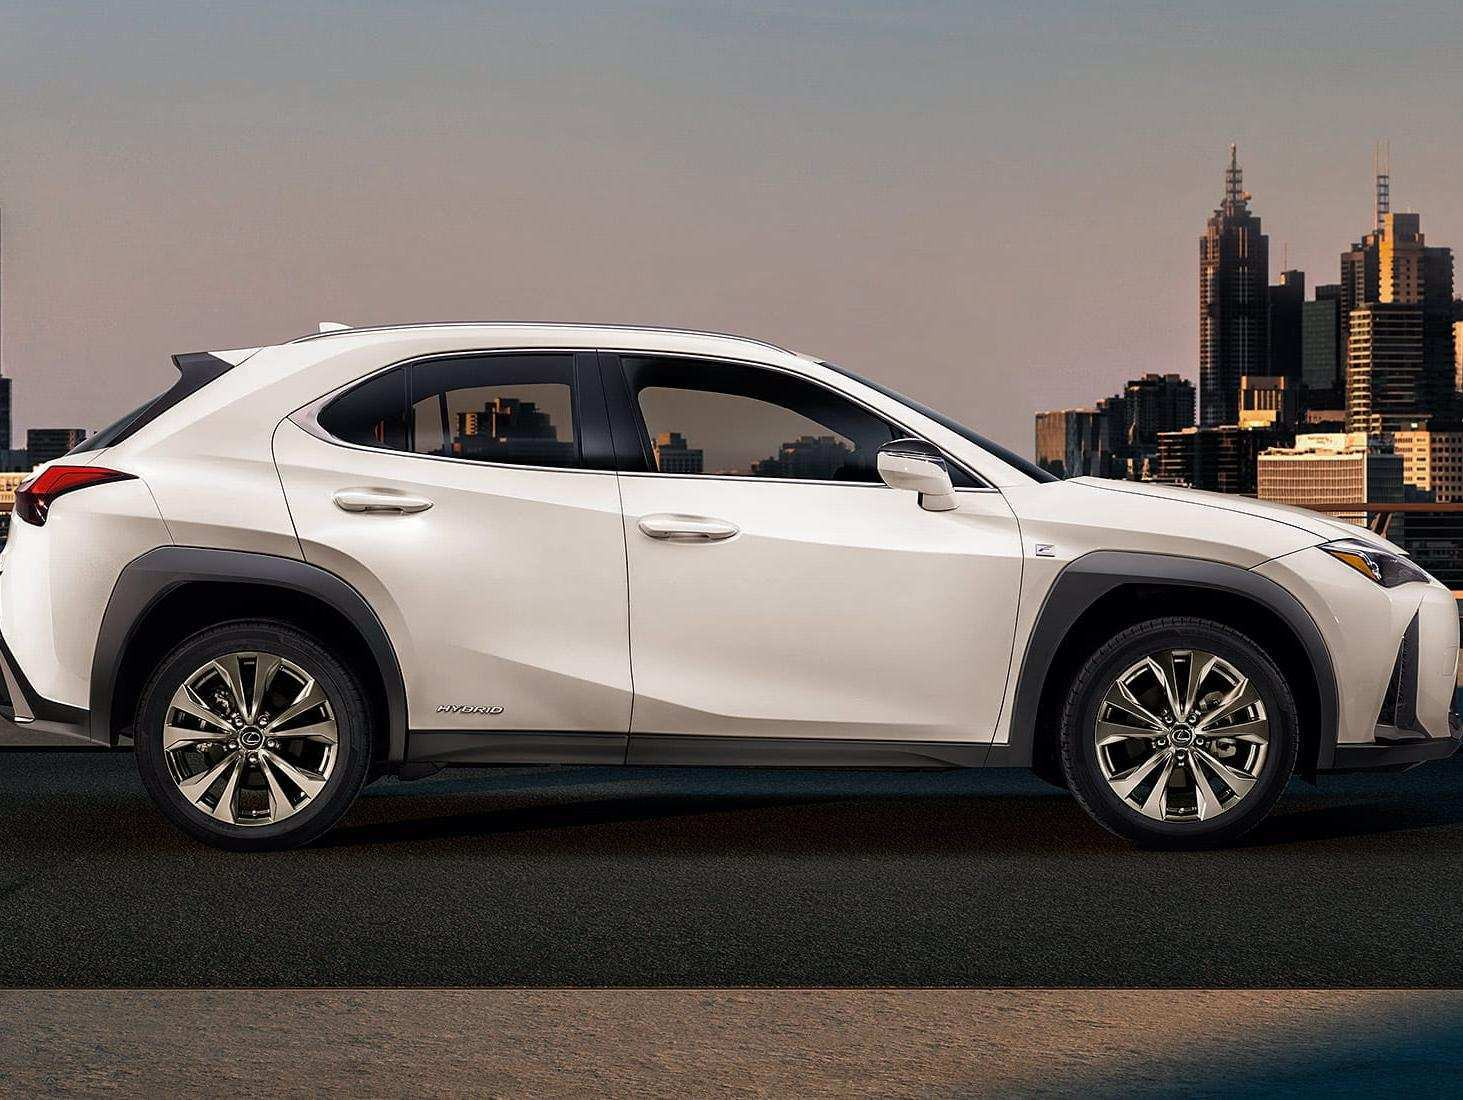 51 Great Lexus 2019 Ux Specs and Review for Lexus 2019 Ux